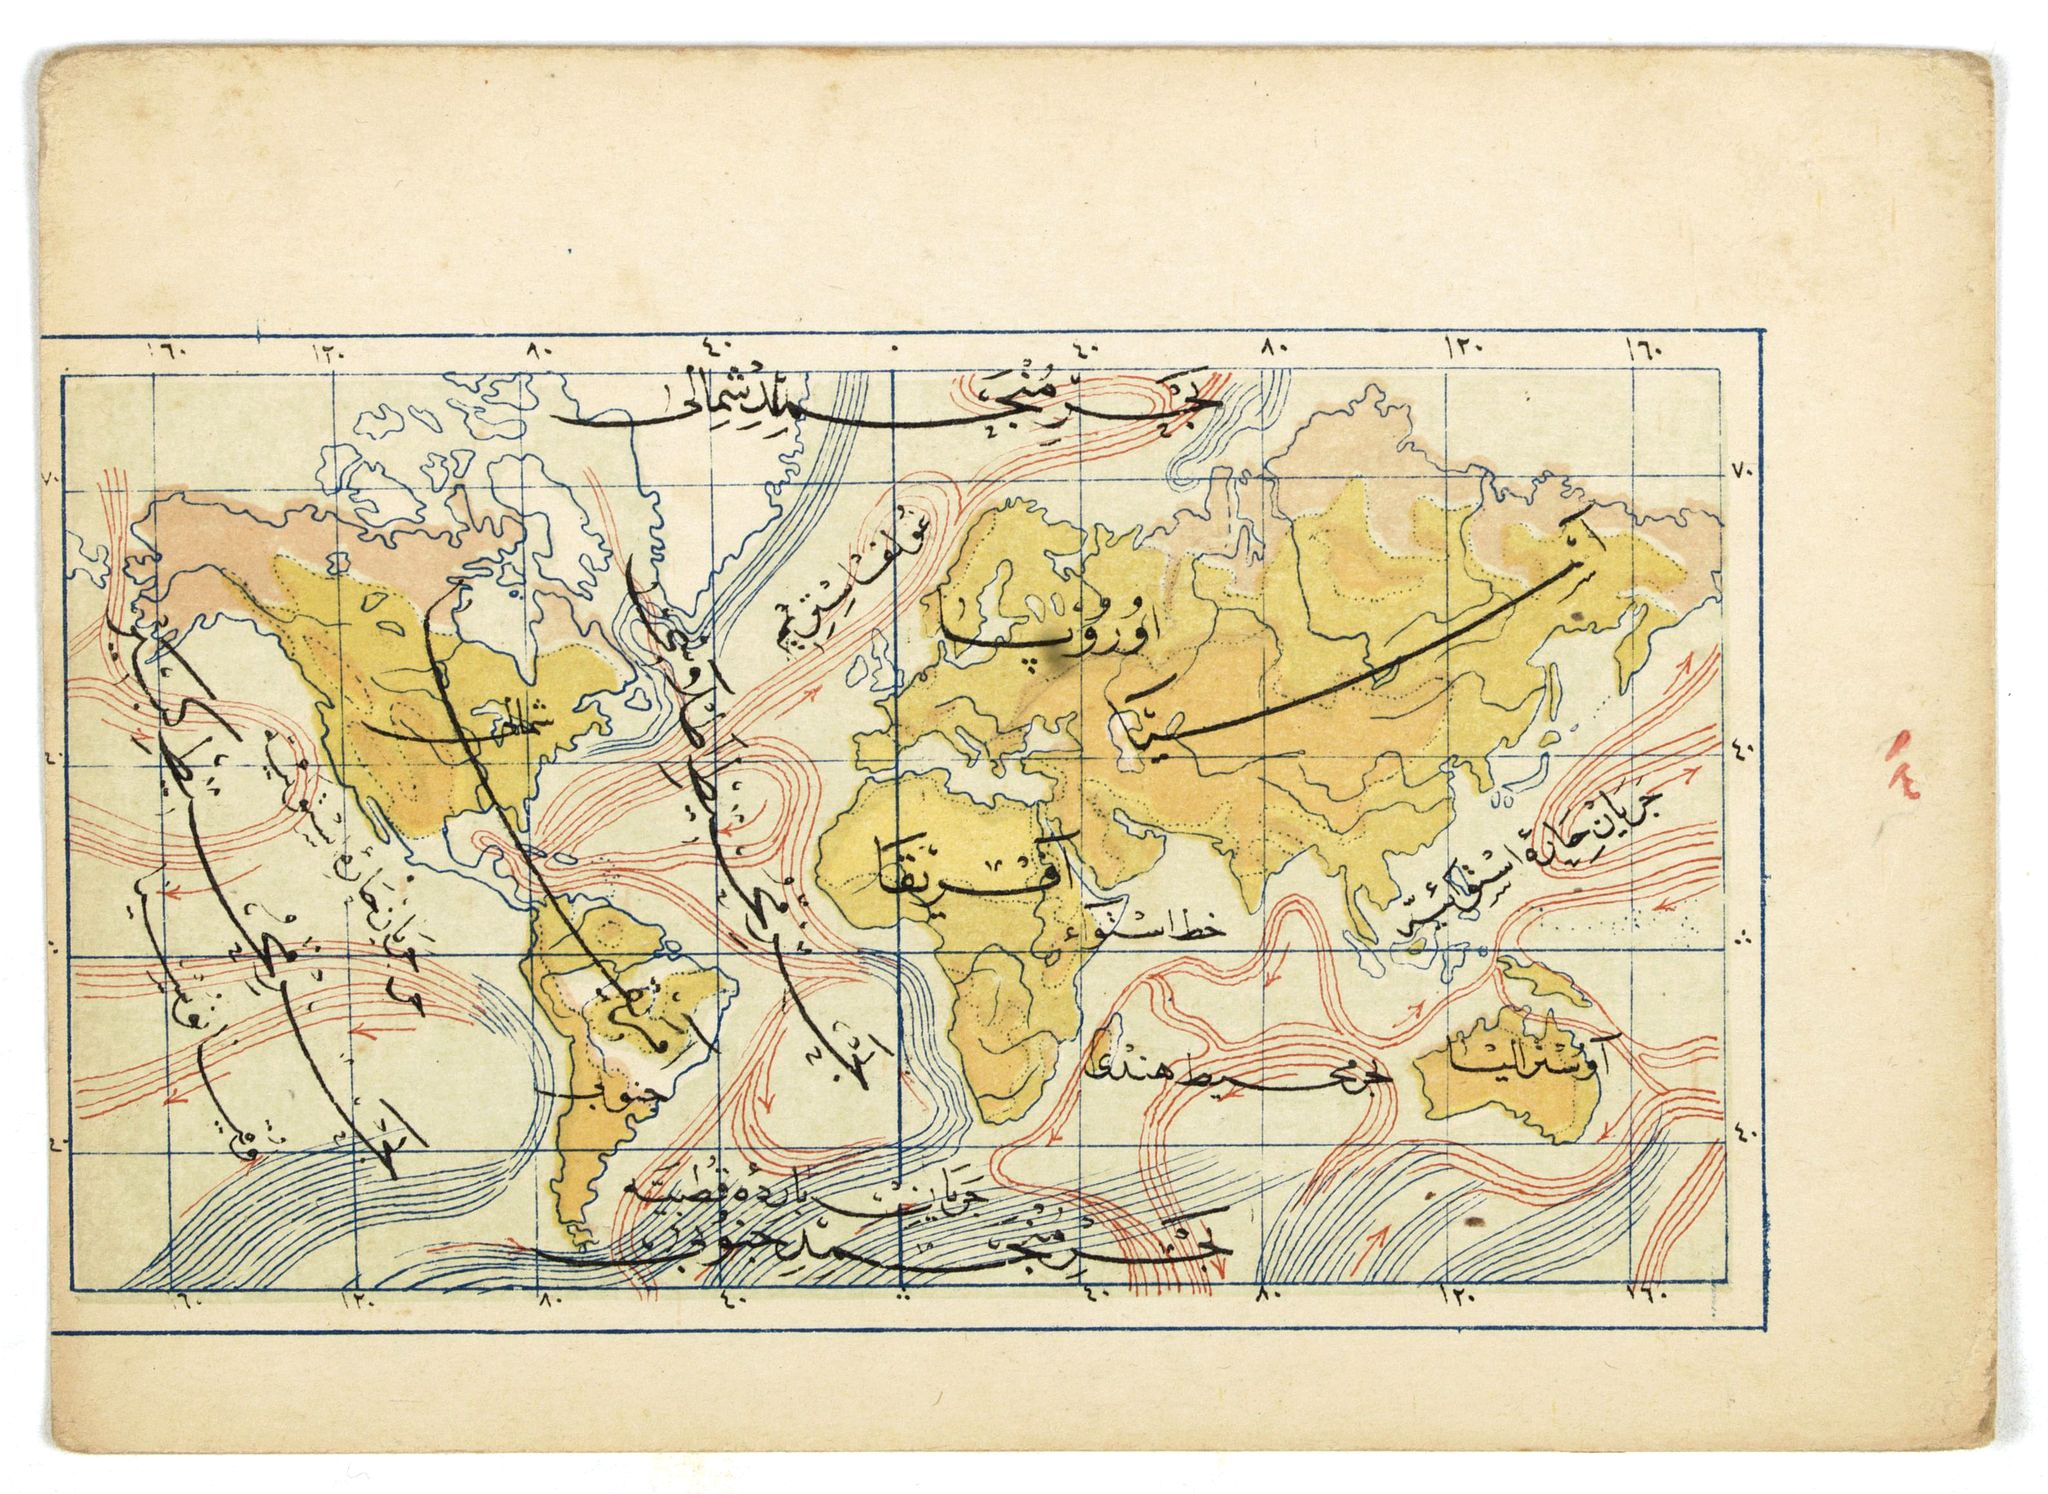 EŞREF, Mehmet -  [World map in showing currents with Ottoman script]